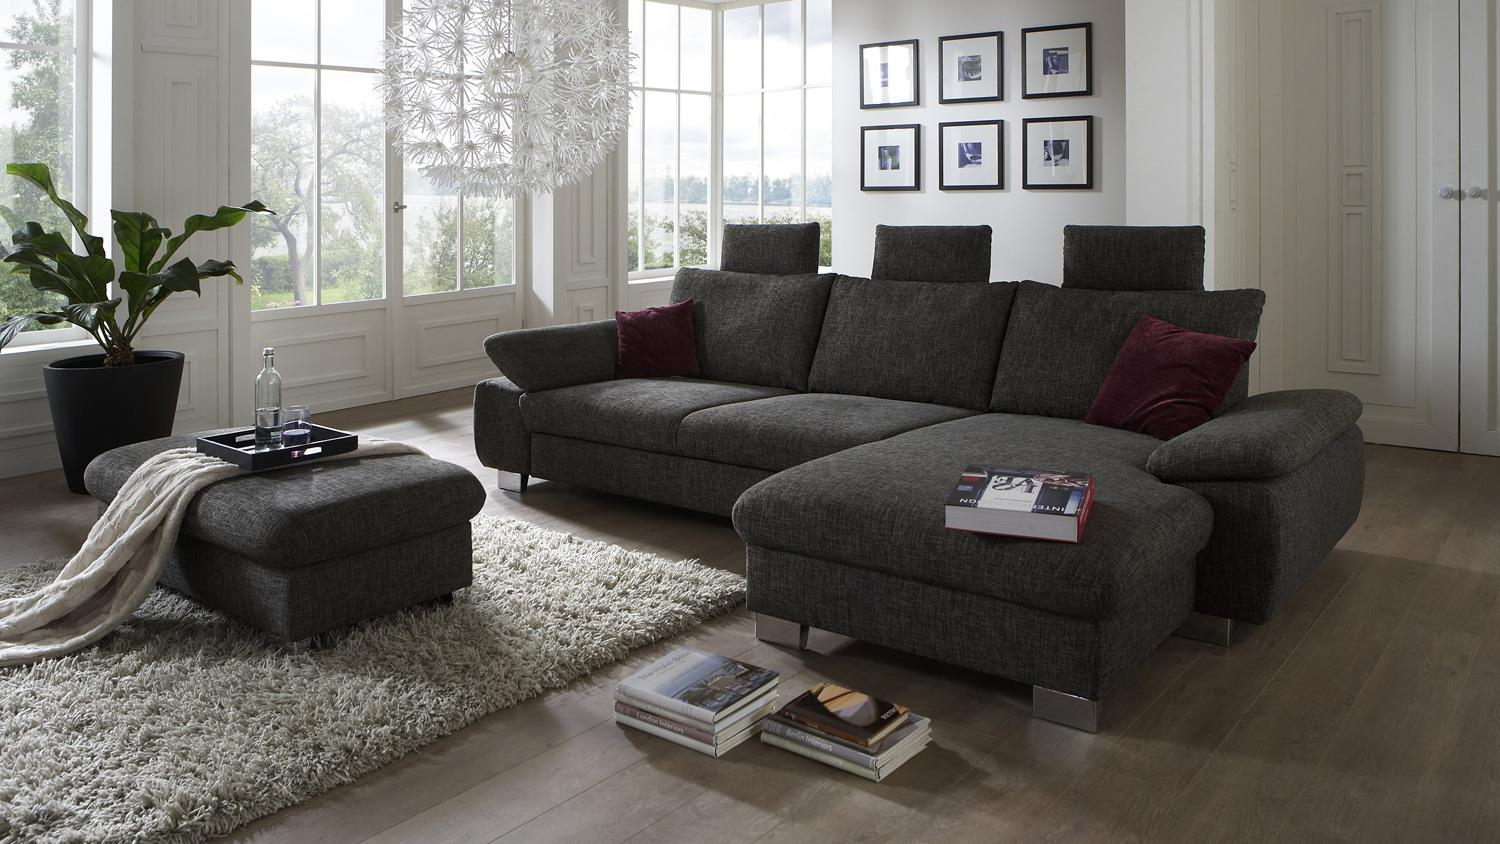 ecksofa bliss in stoff braun grau mit sitztiefenverstellung 318x184 cm. Black Bedroom Furniture Sets. Home Design Ideas